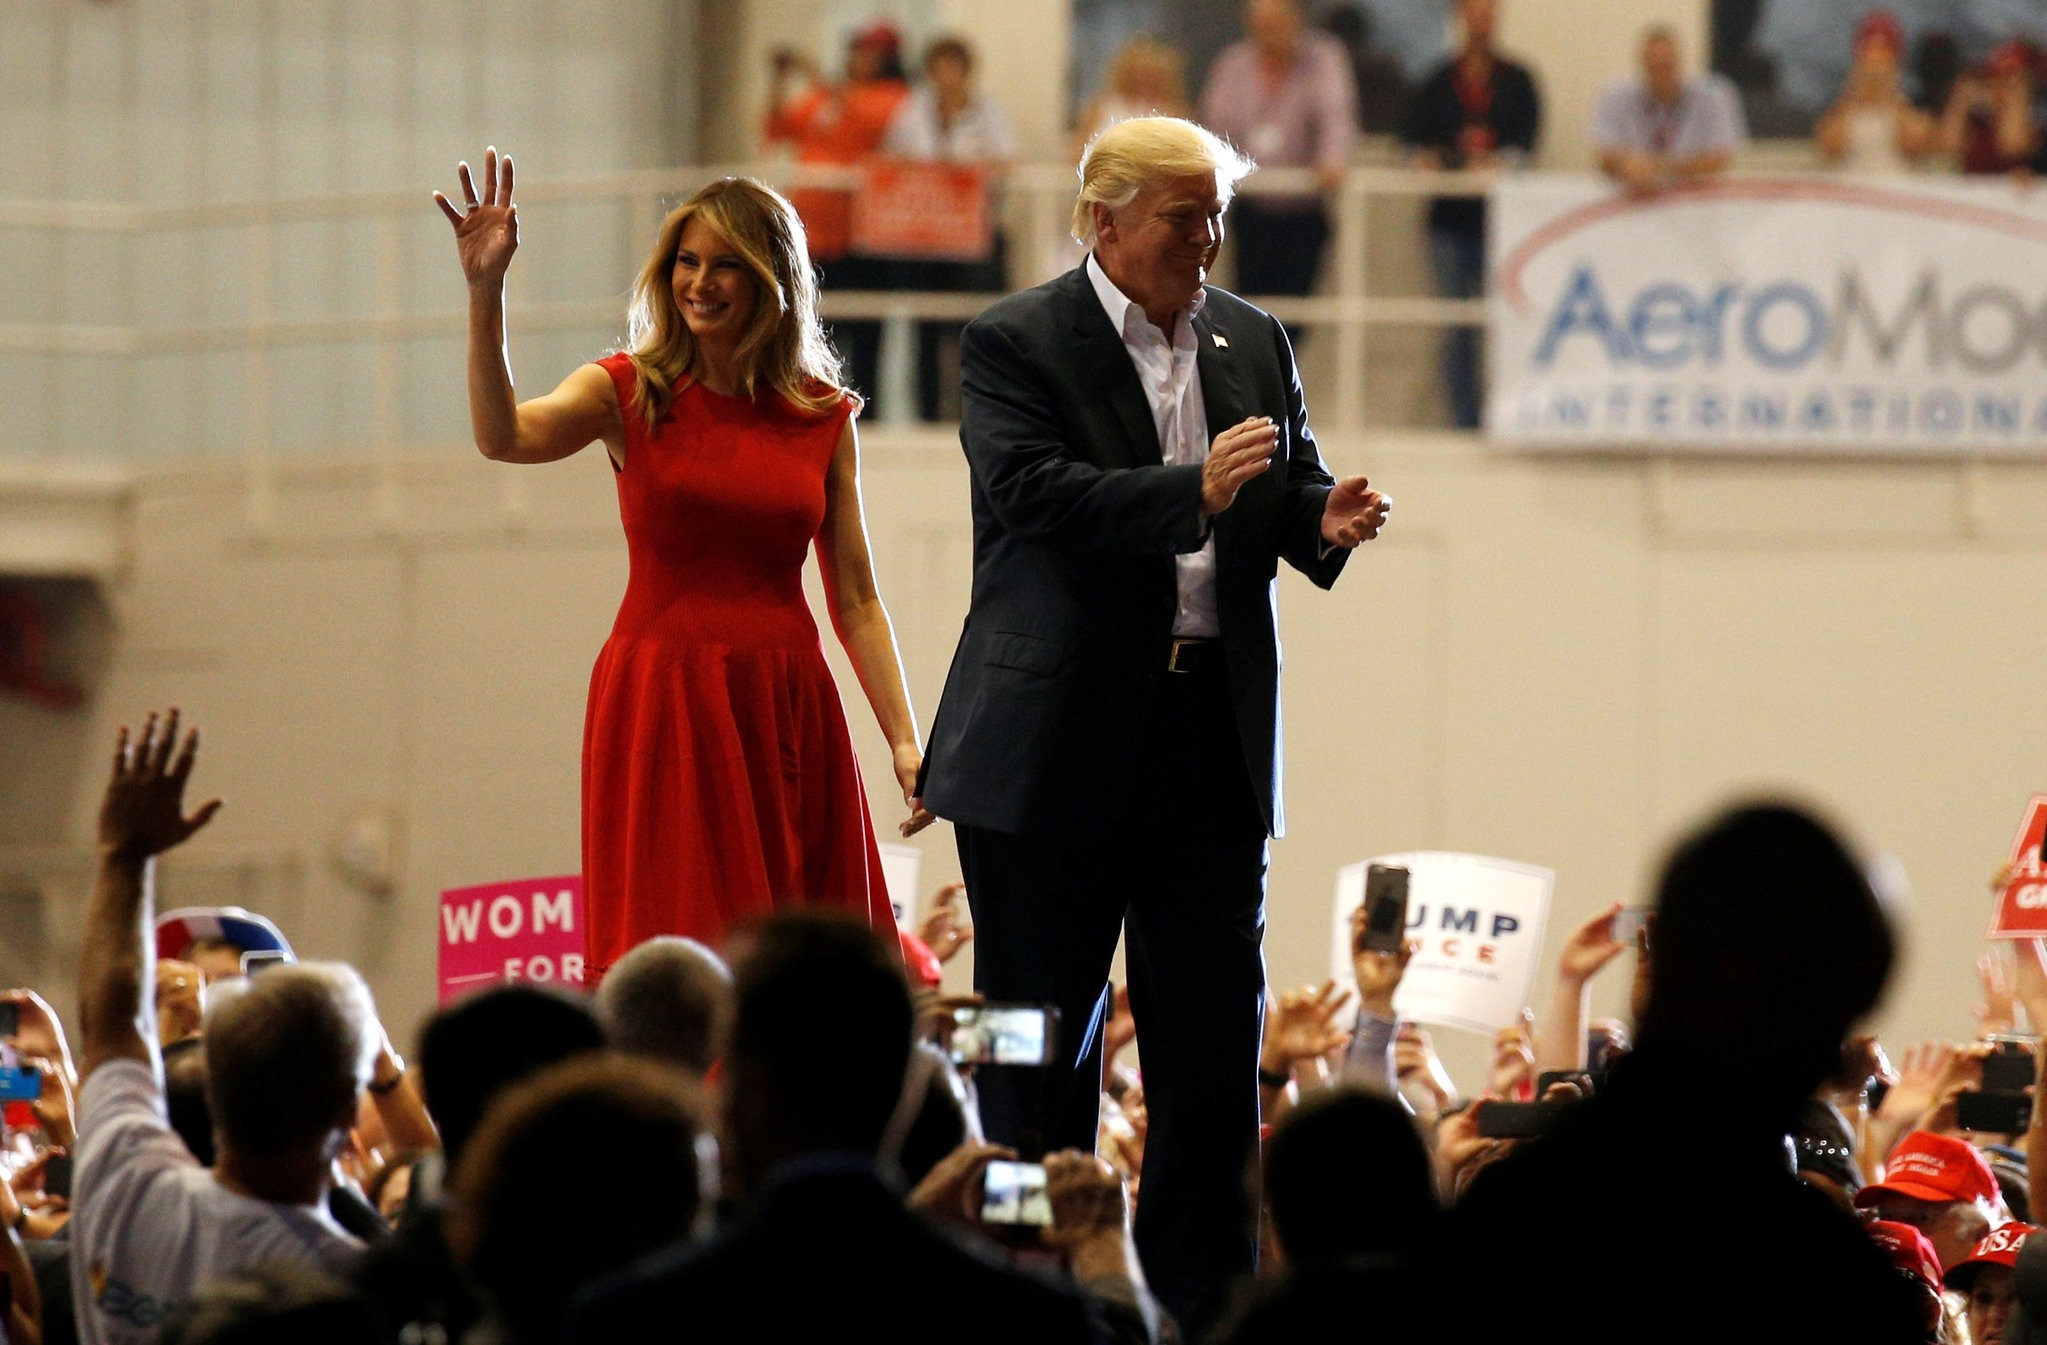 U.S. President Donald Trump and first lady Melania Trump acknowledge supporters during a rally in Melbourne, Florida, U.S. February 18, 2017. (REUTERS Photo)